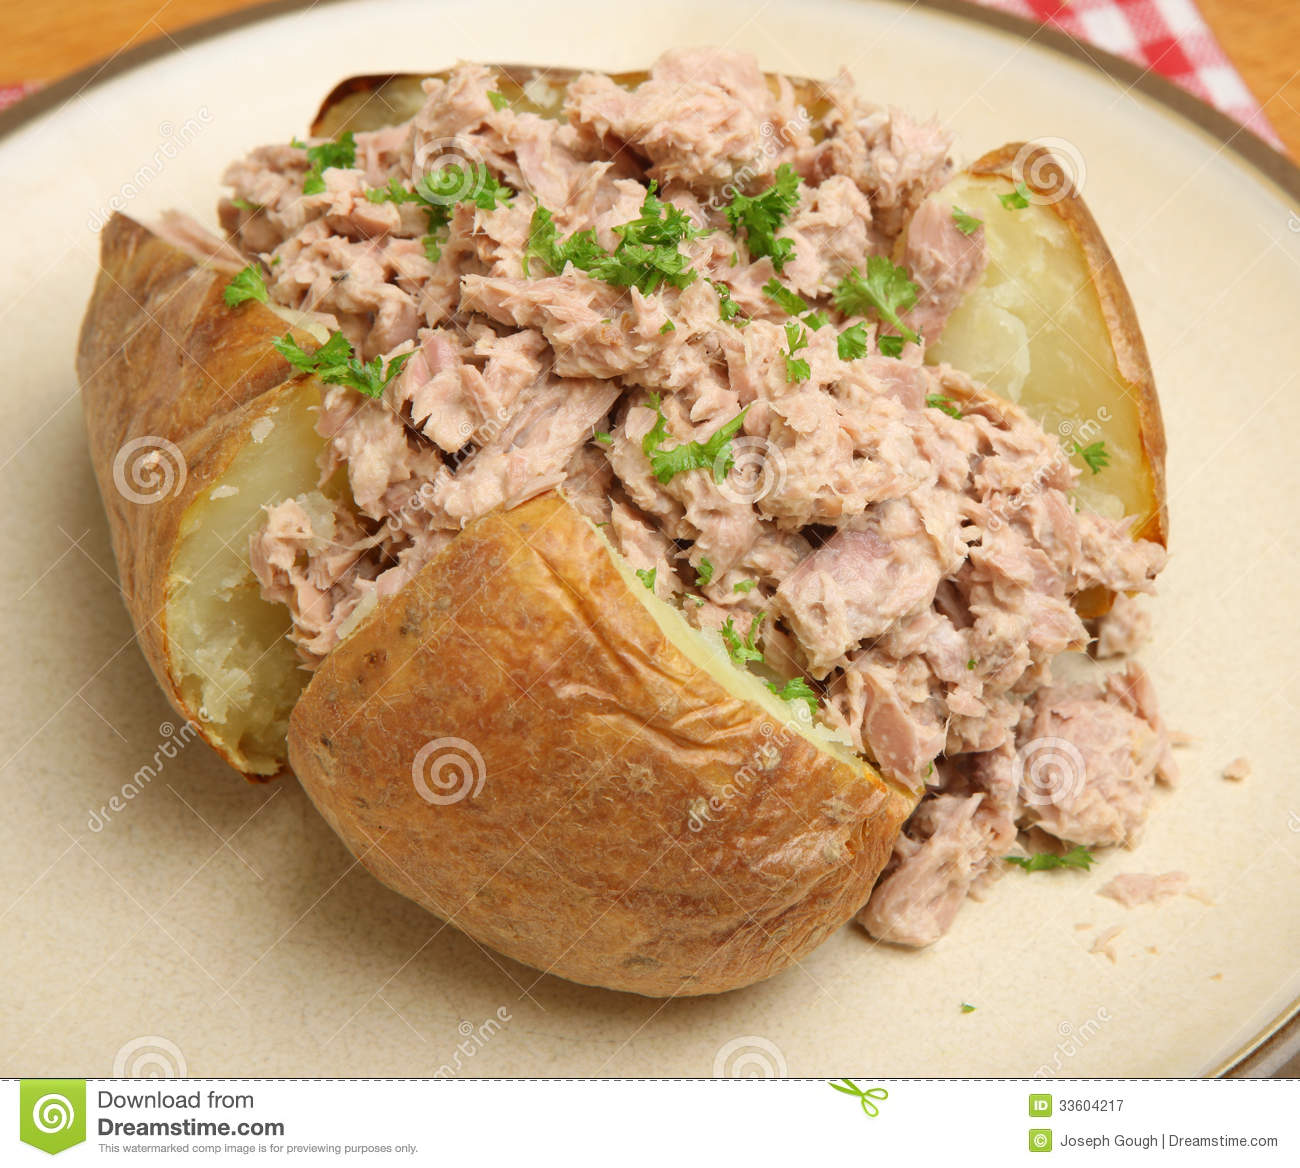 Jacket potato with tuna mayonnaise royalty free stock for Jacket potato fillings mushroom